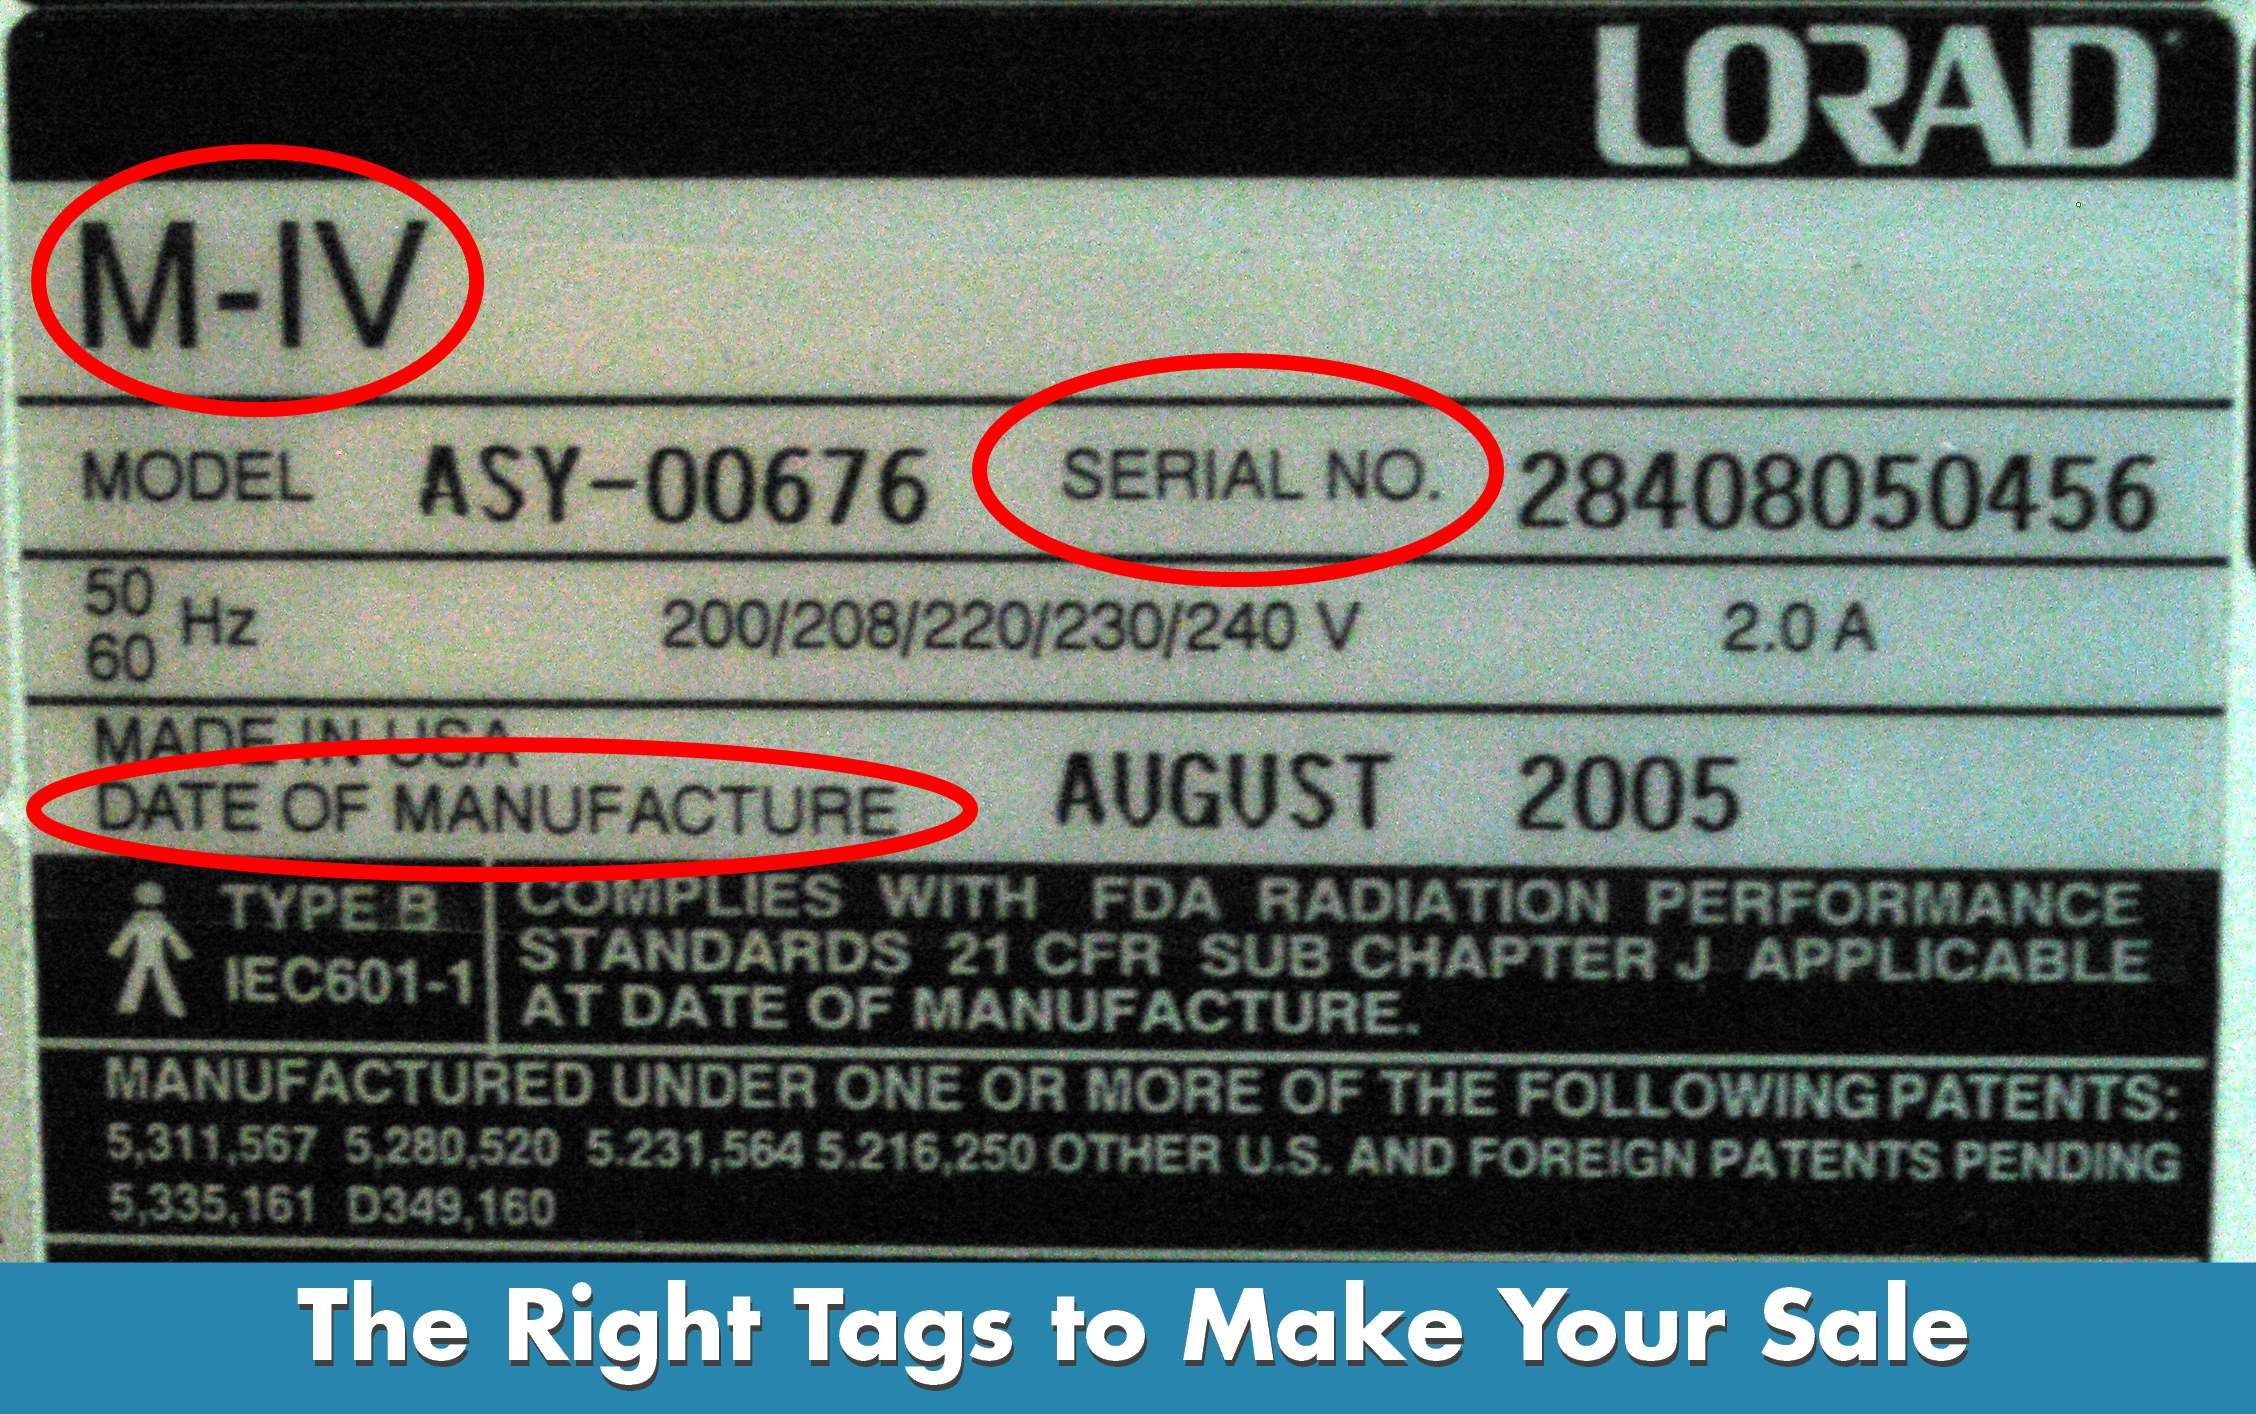 Finding The Right Serial Tag On Your Medical Imaging